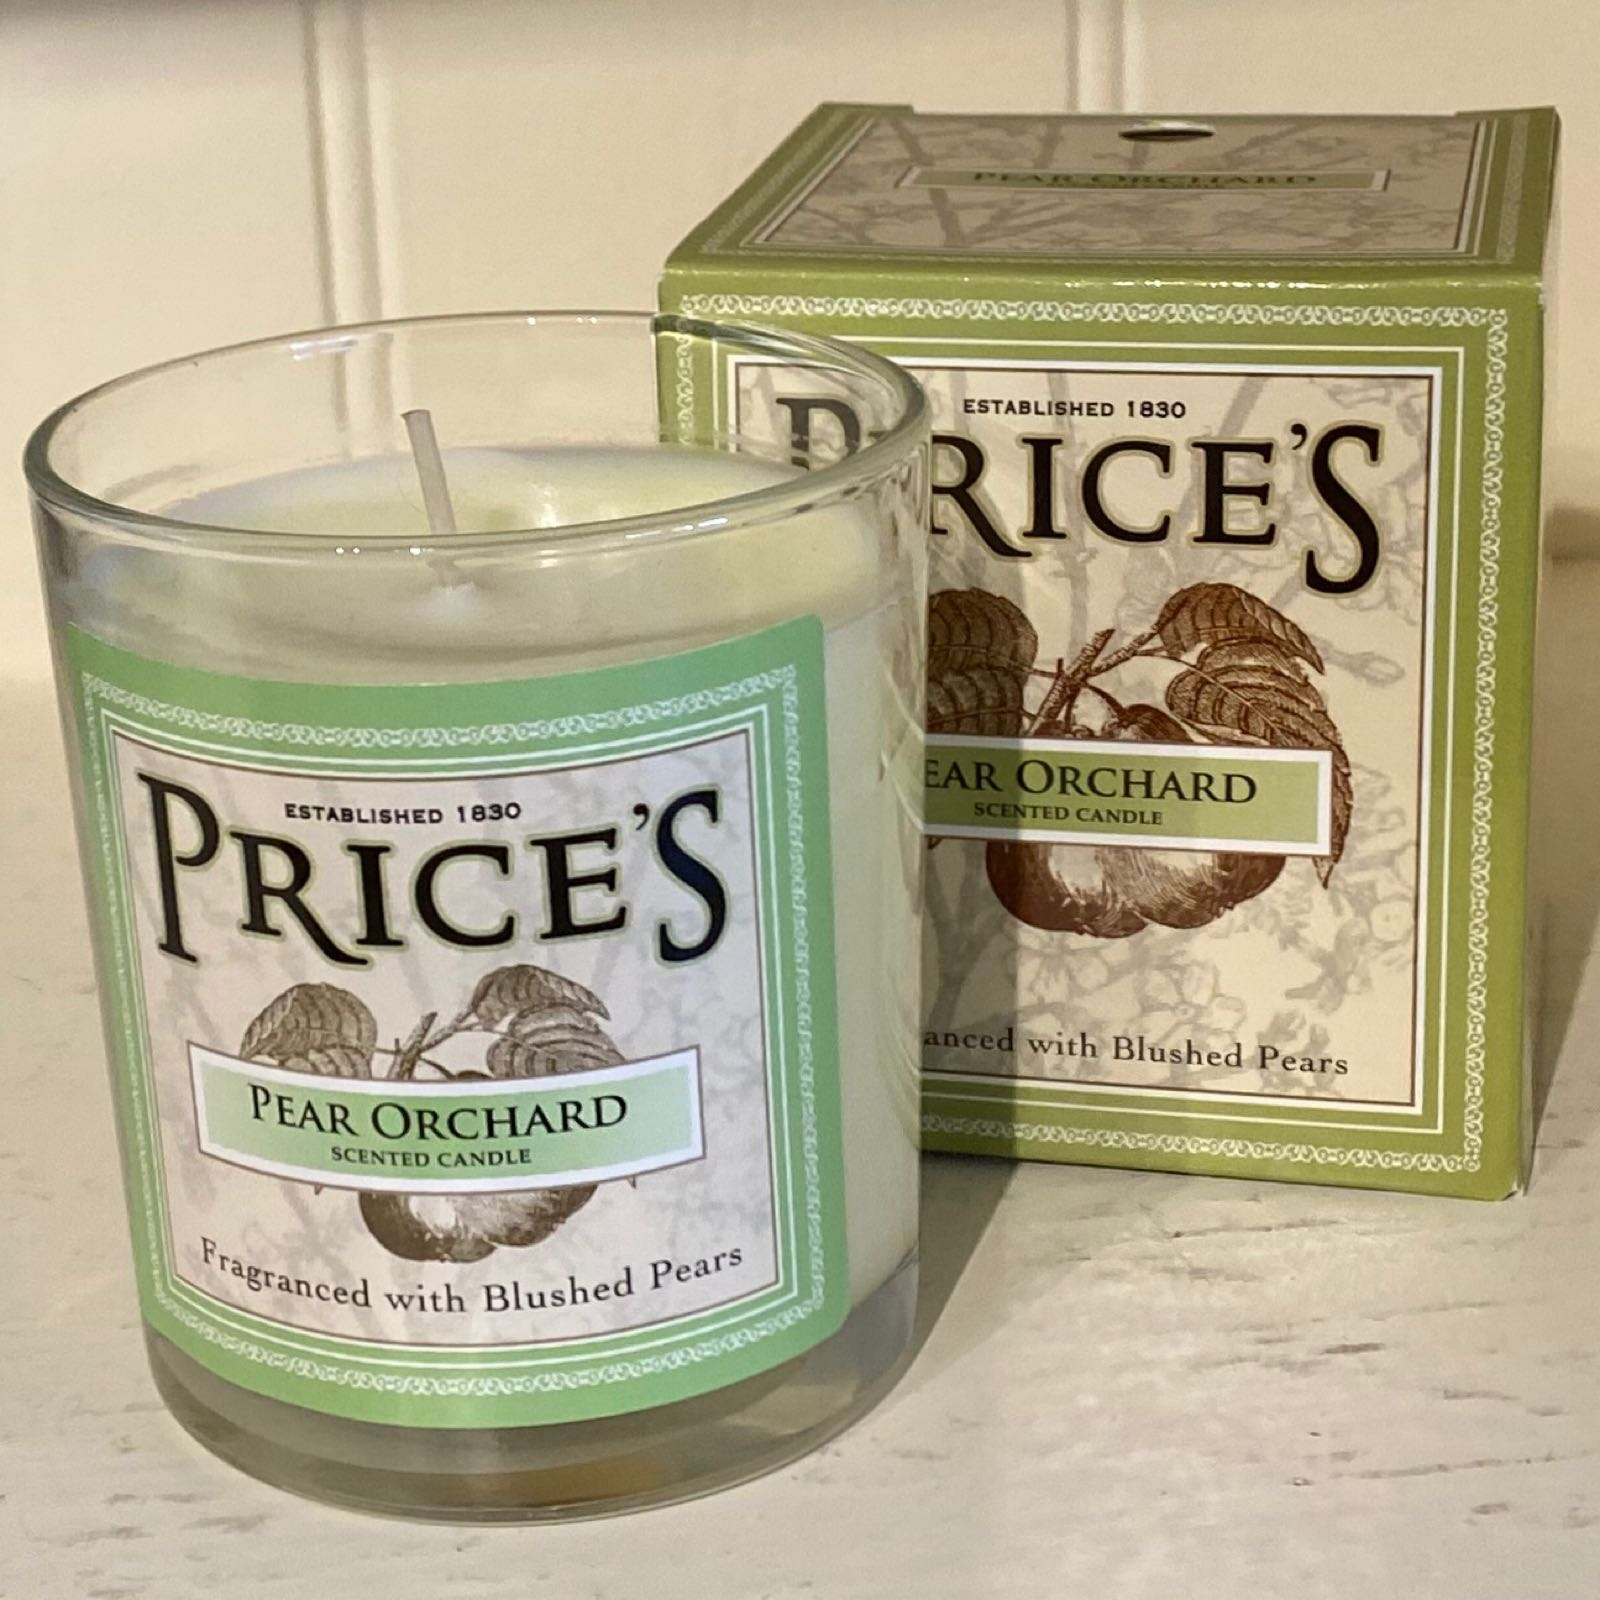 'Pear Orchard' Price's Candle (Was £7.50)